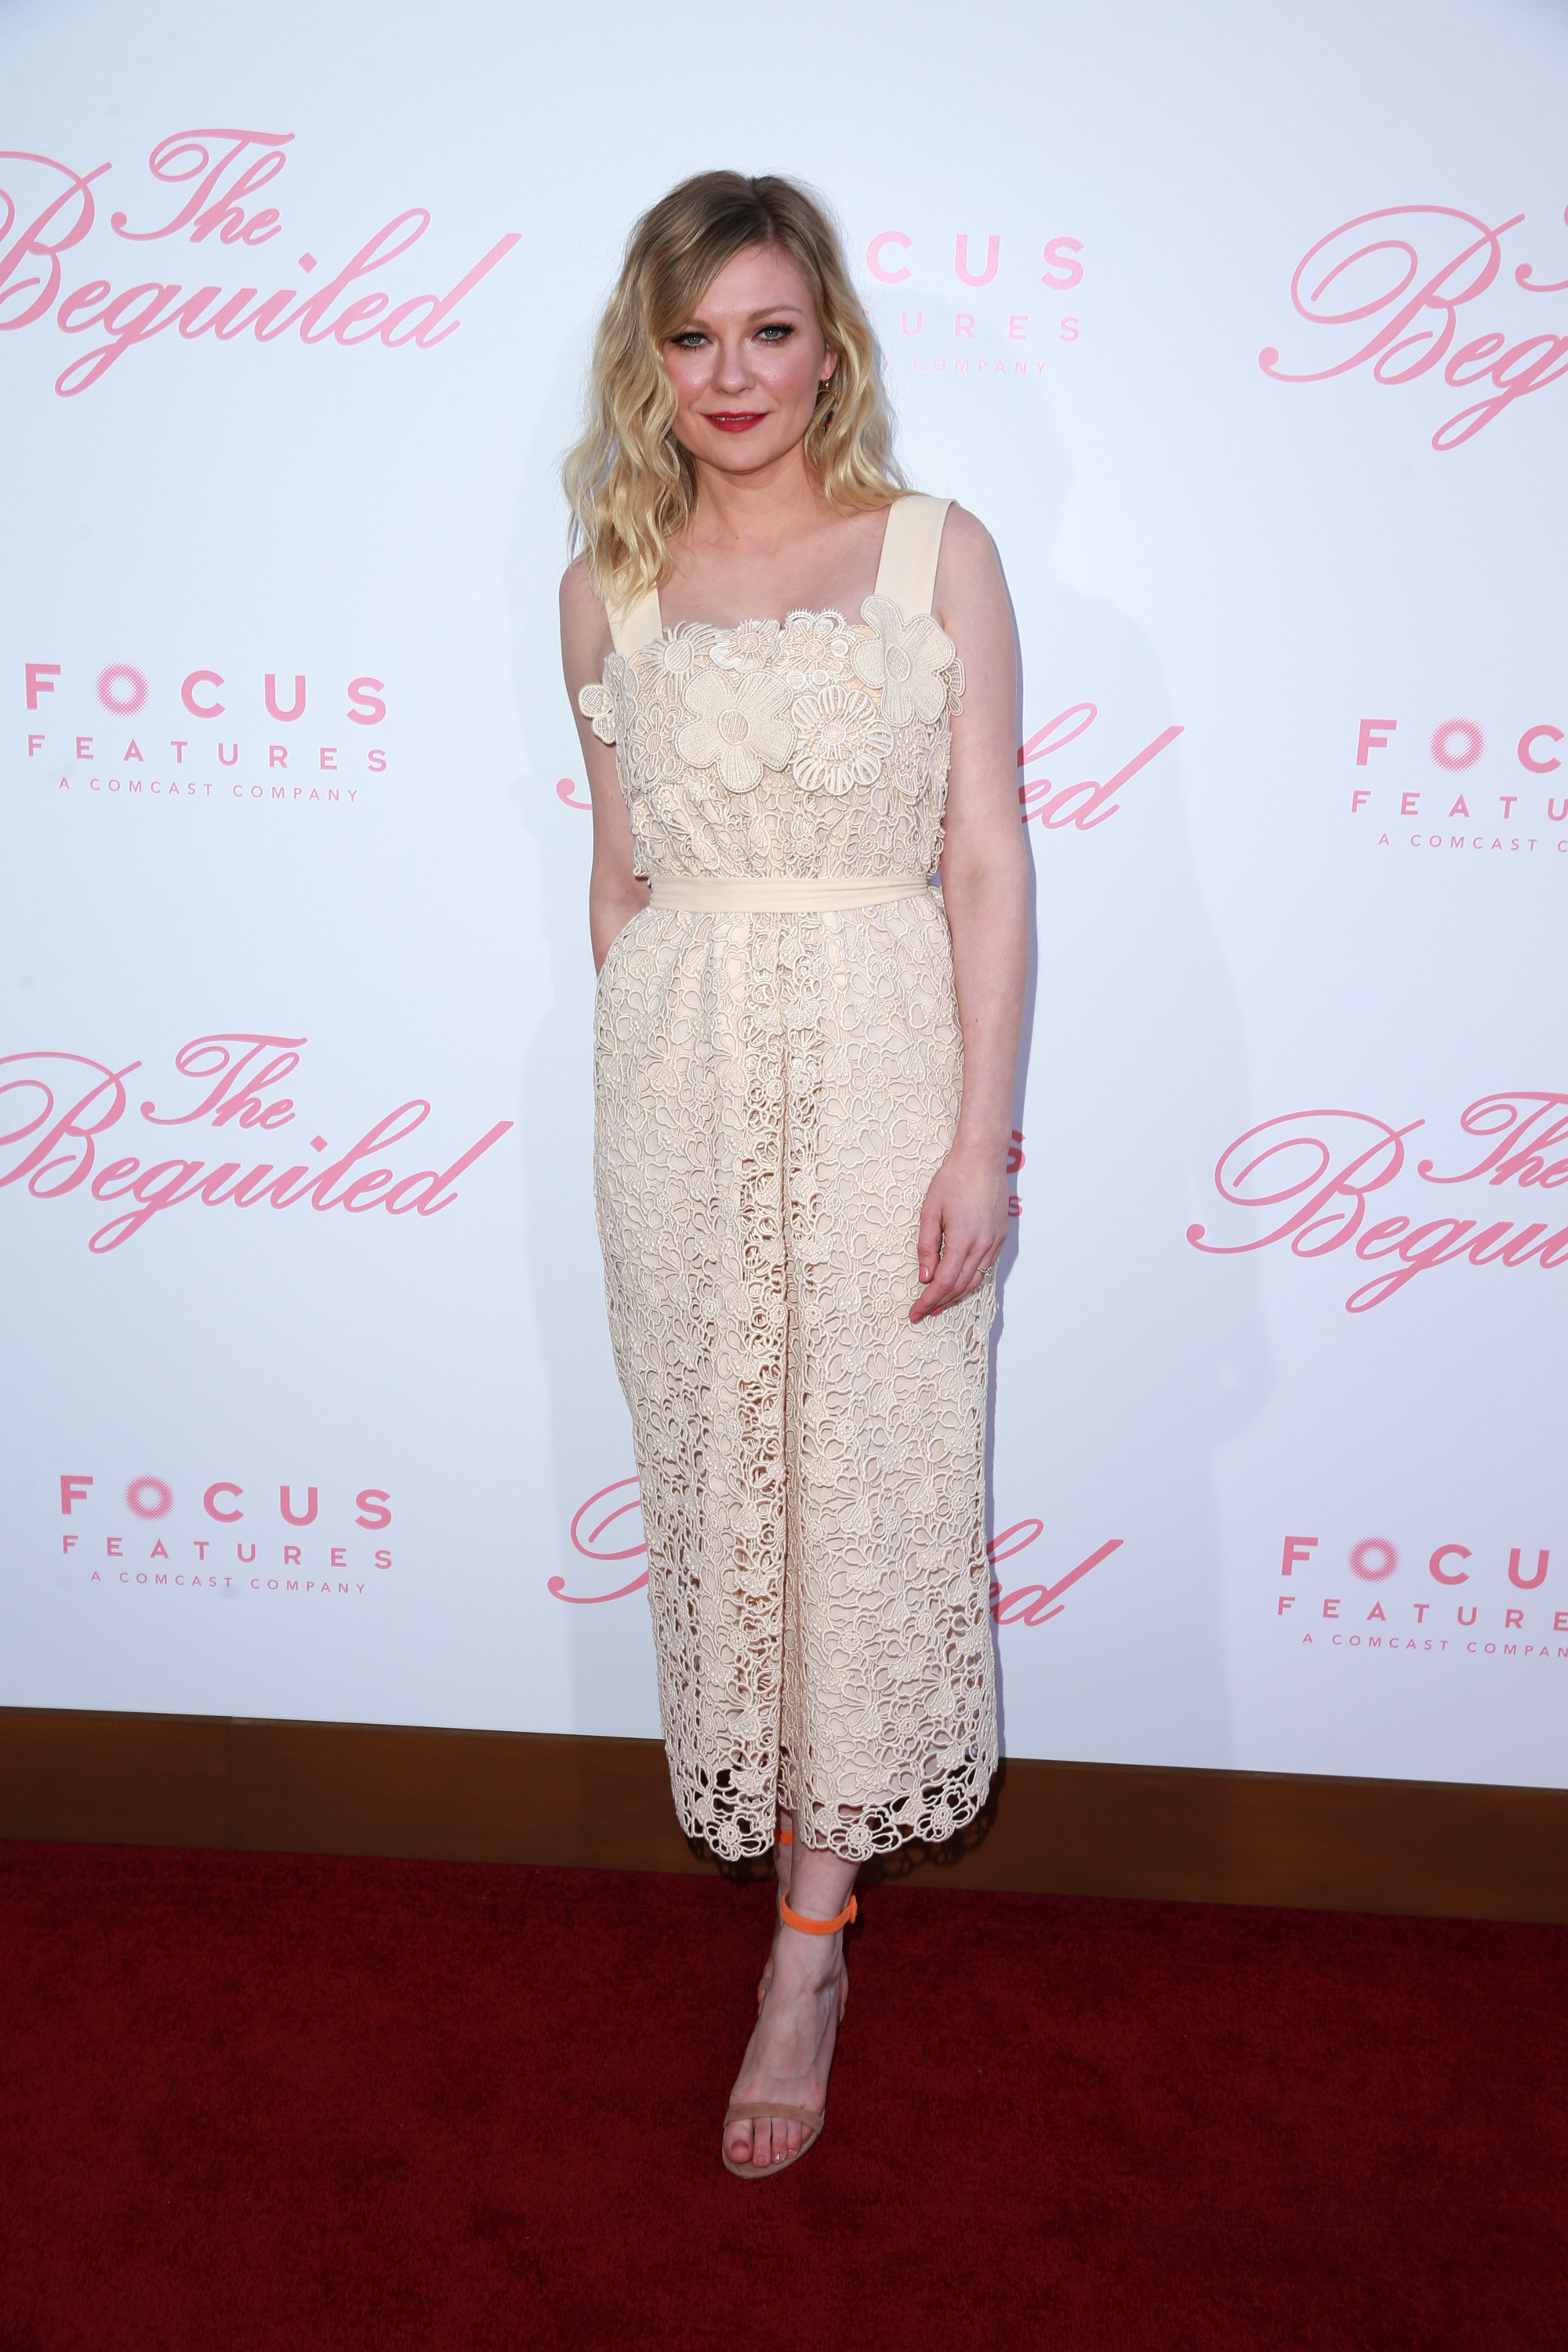 Premiere Of Focus Features'  The Beguiled  - Arrivals